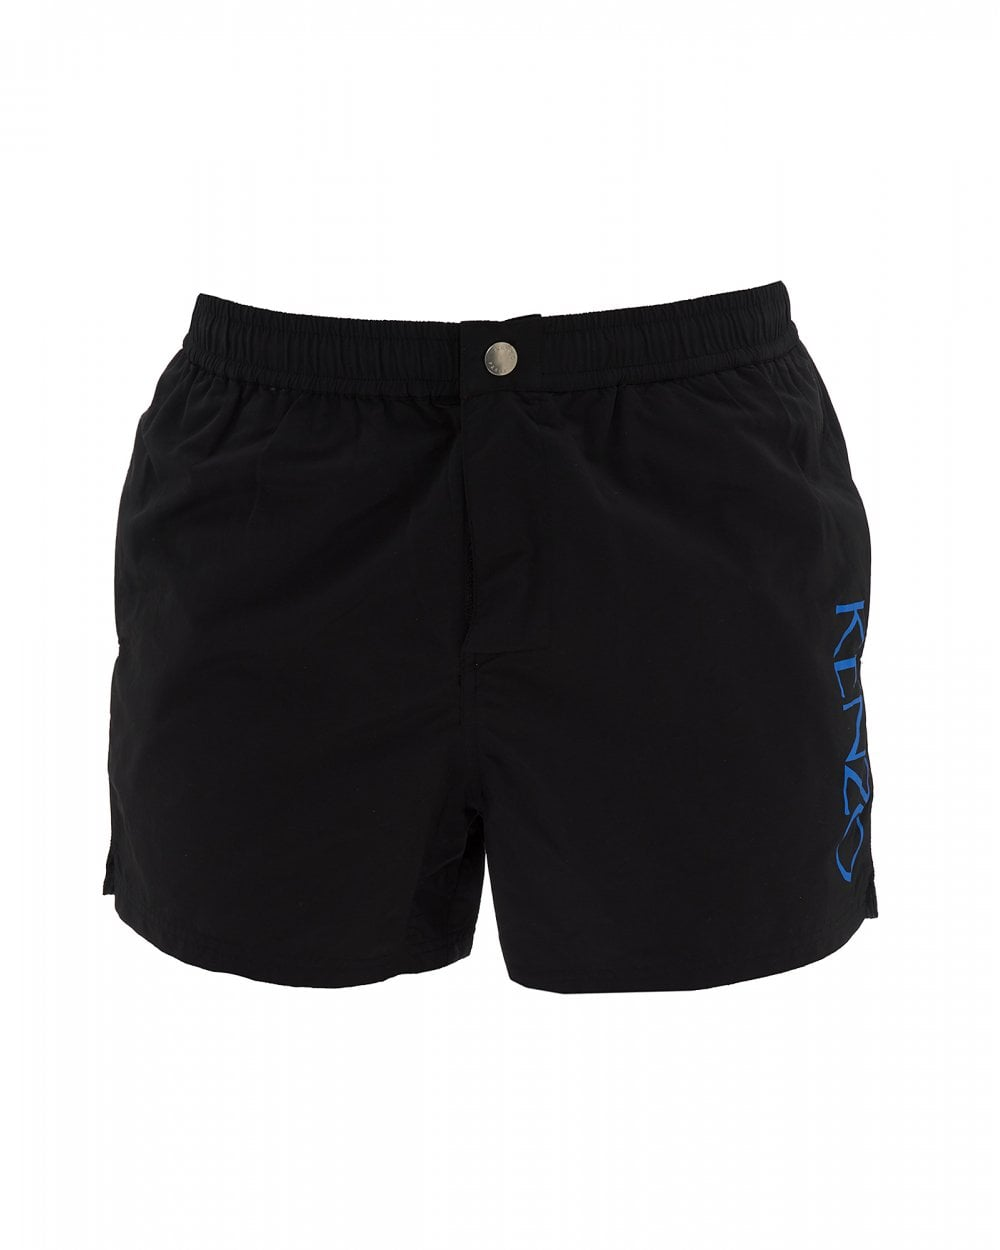 2a160e9a00 Kenzo Mens Black Swim Shorts, Printed Logo Swimming Trunks